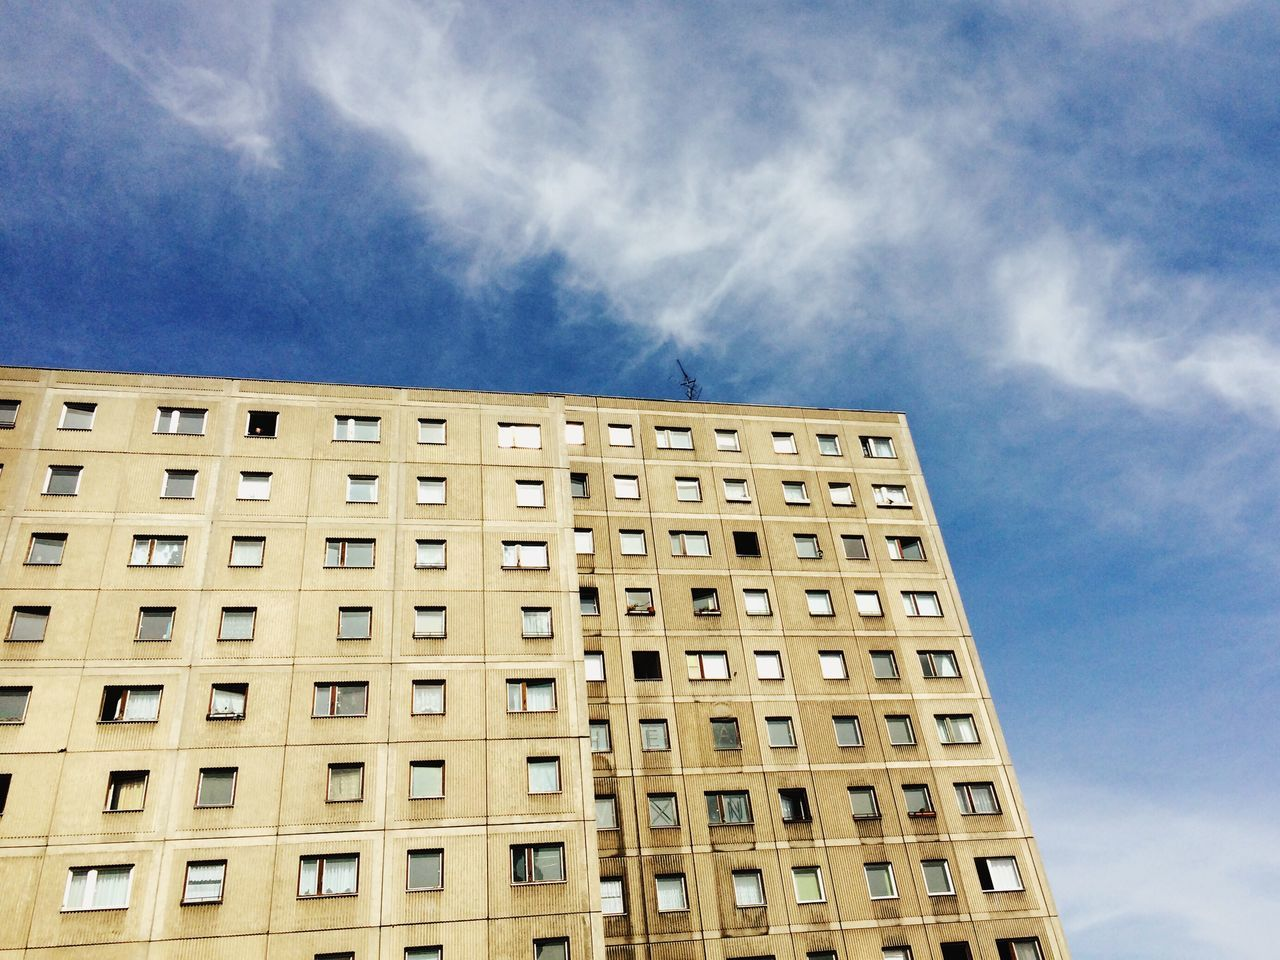 Building Exterior Architecture Low Angle View Sky Built Structure No People Plattenbau City Repetition Day Outdoors Travel Destinations